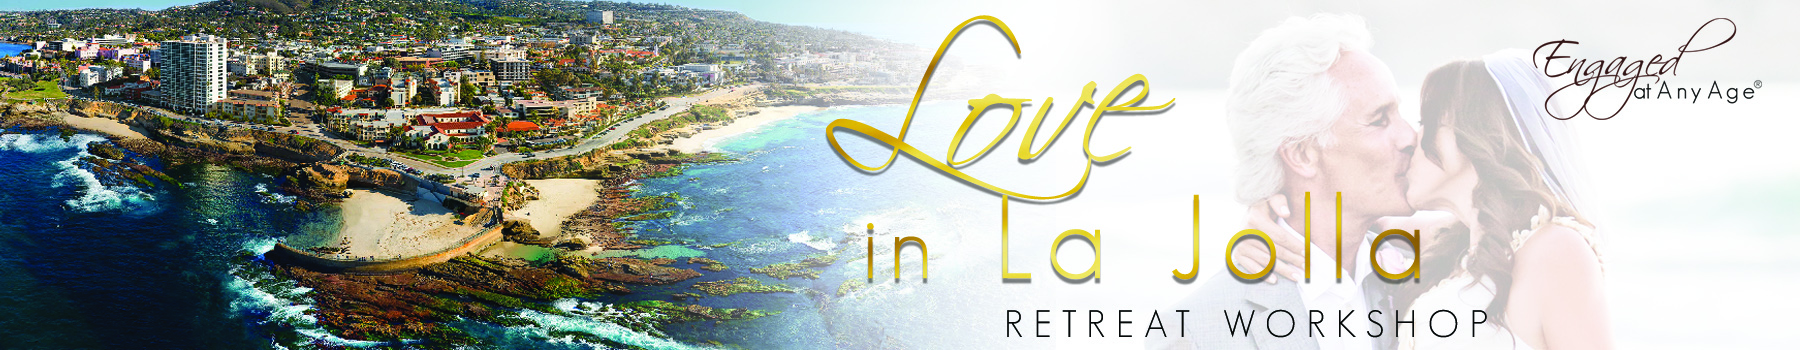 Love in LaJolla Retreat Workshop hosted by Jaki Sabourin and Engaged At Any Age